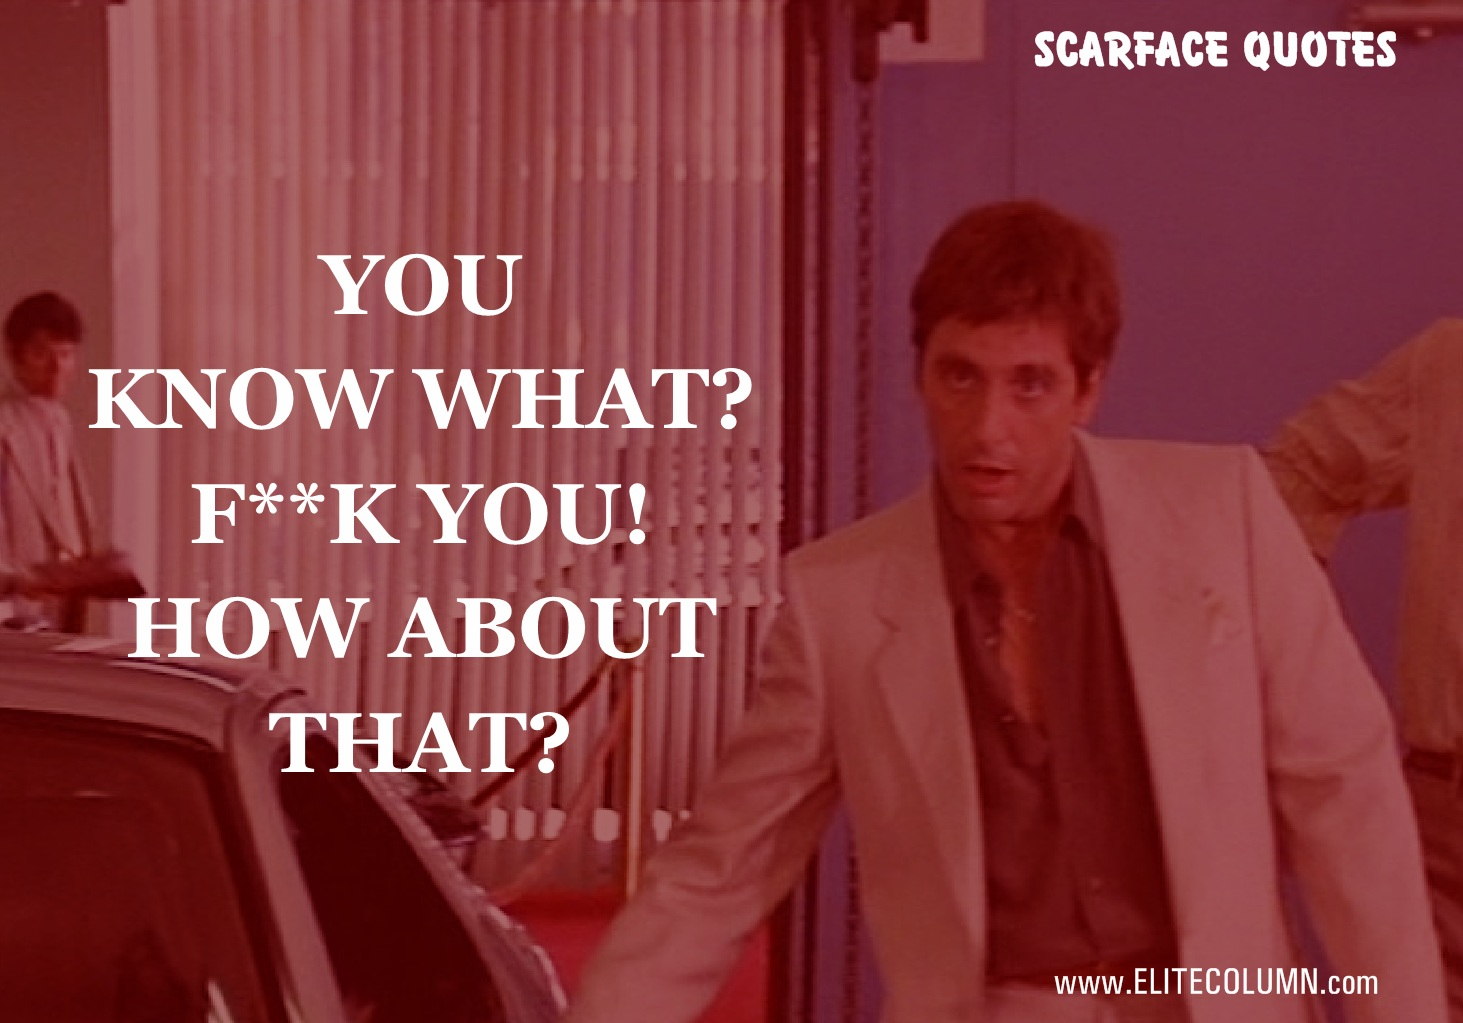 Scarface Quotes (6)